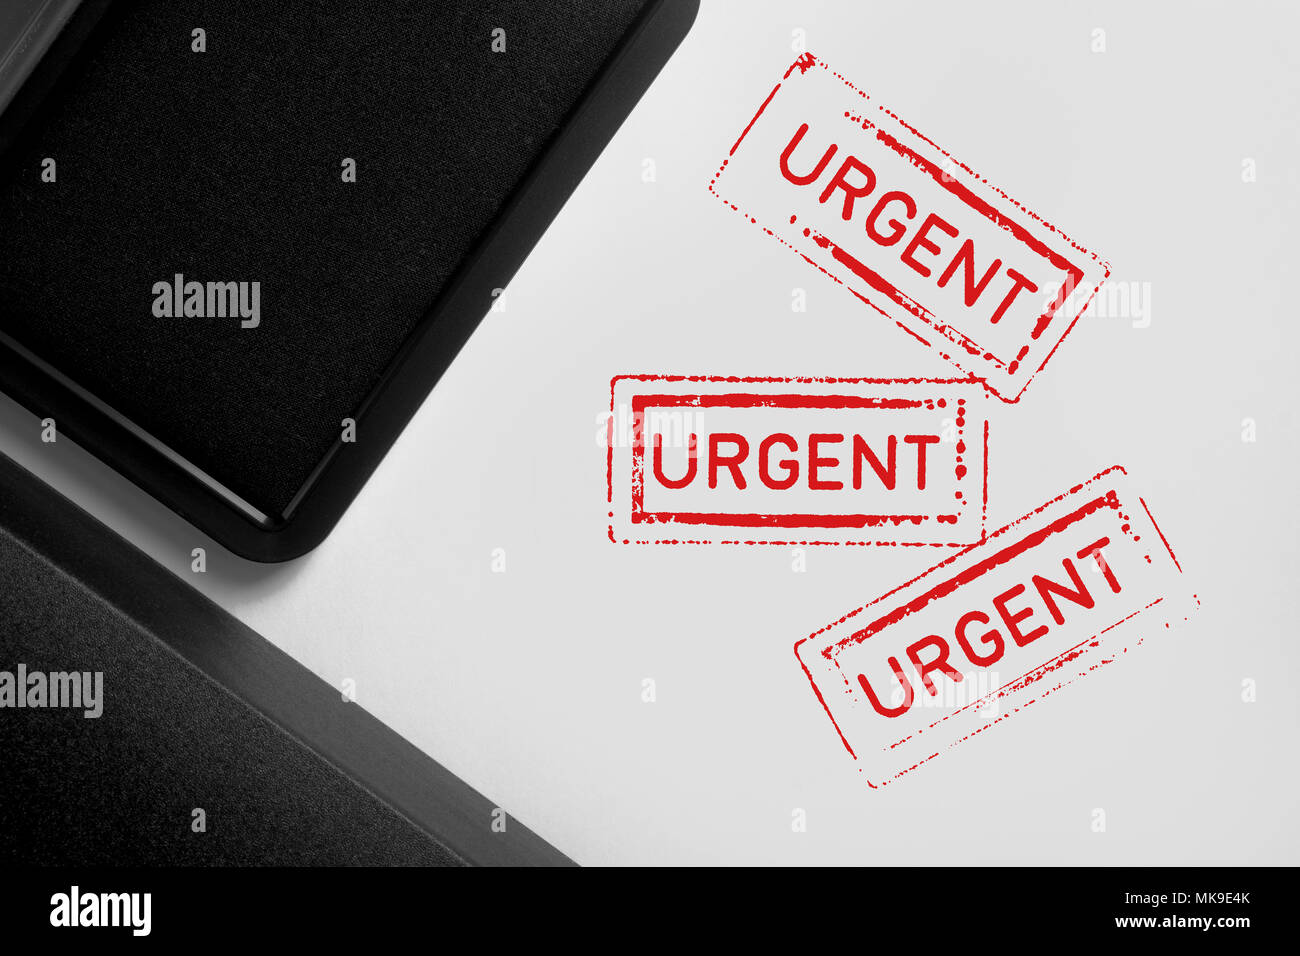 Multiple Urgent stamps on white background. - Stock Image